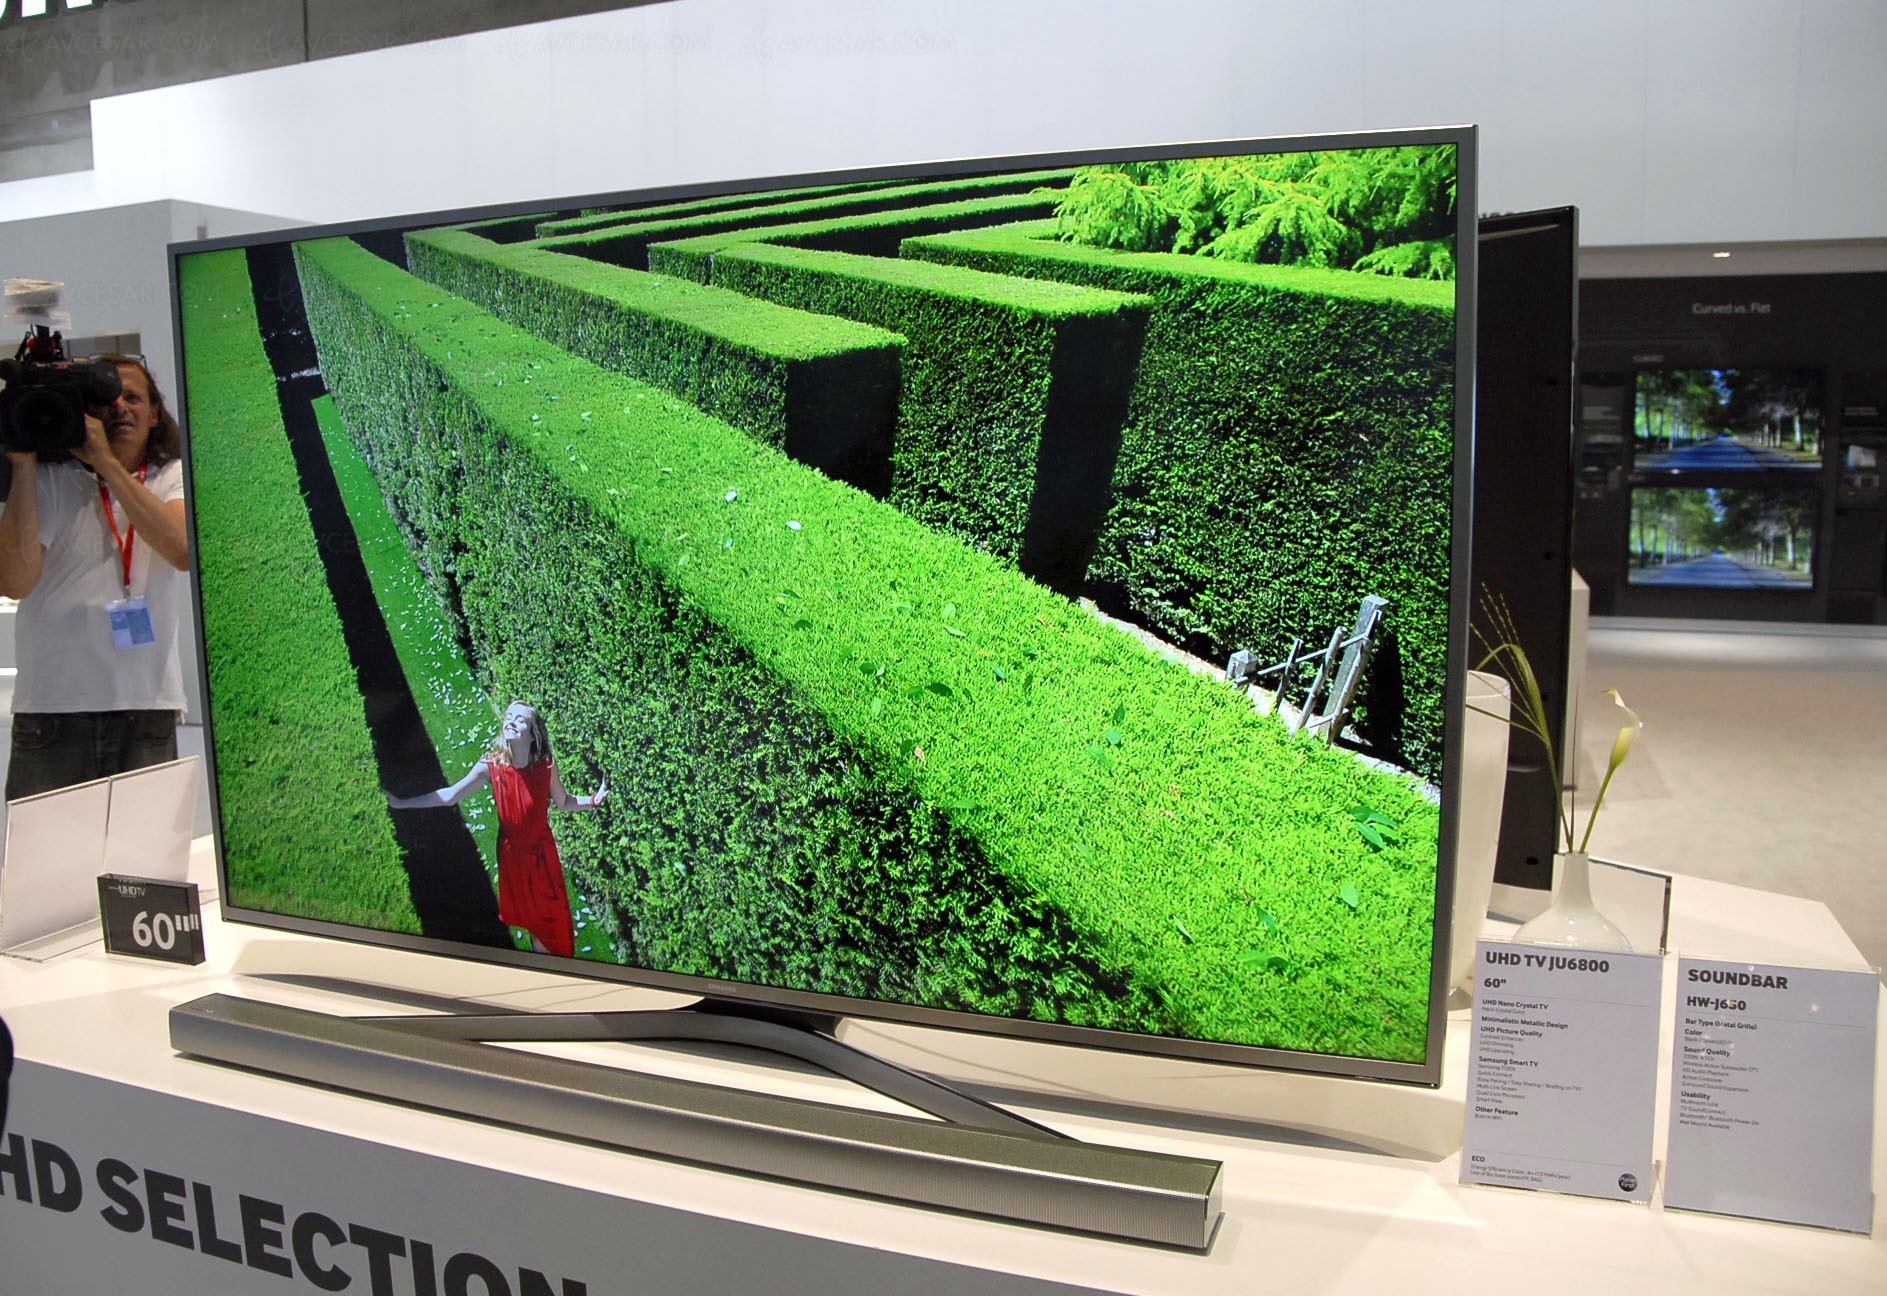 ifa 15 tv ultra hd samsung 2015 mise jour hdmi pour hdr. Black Bedroom Furniture Sets. Home Design Ideas